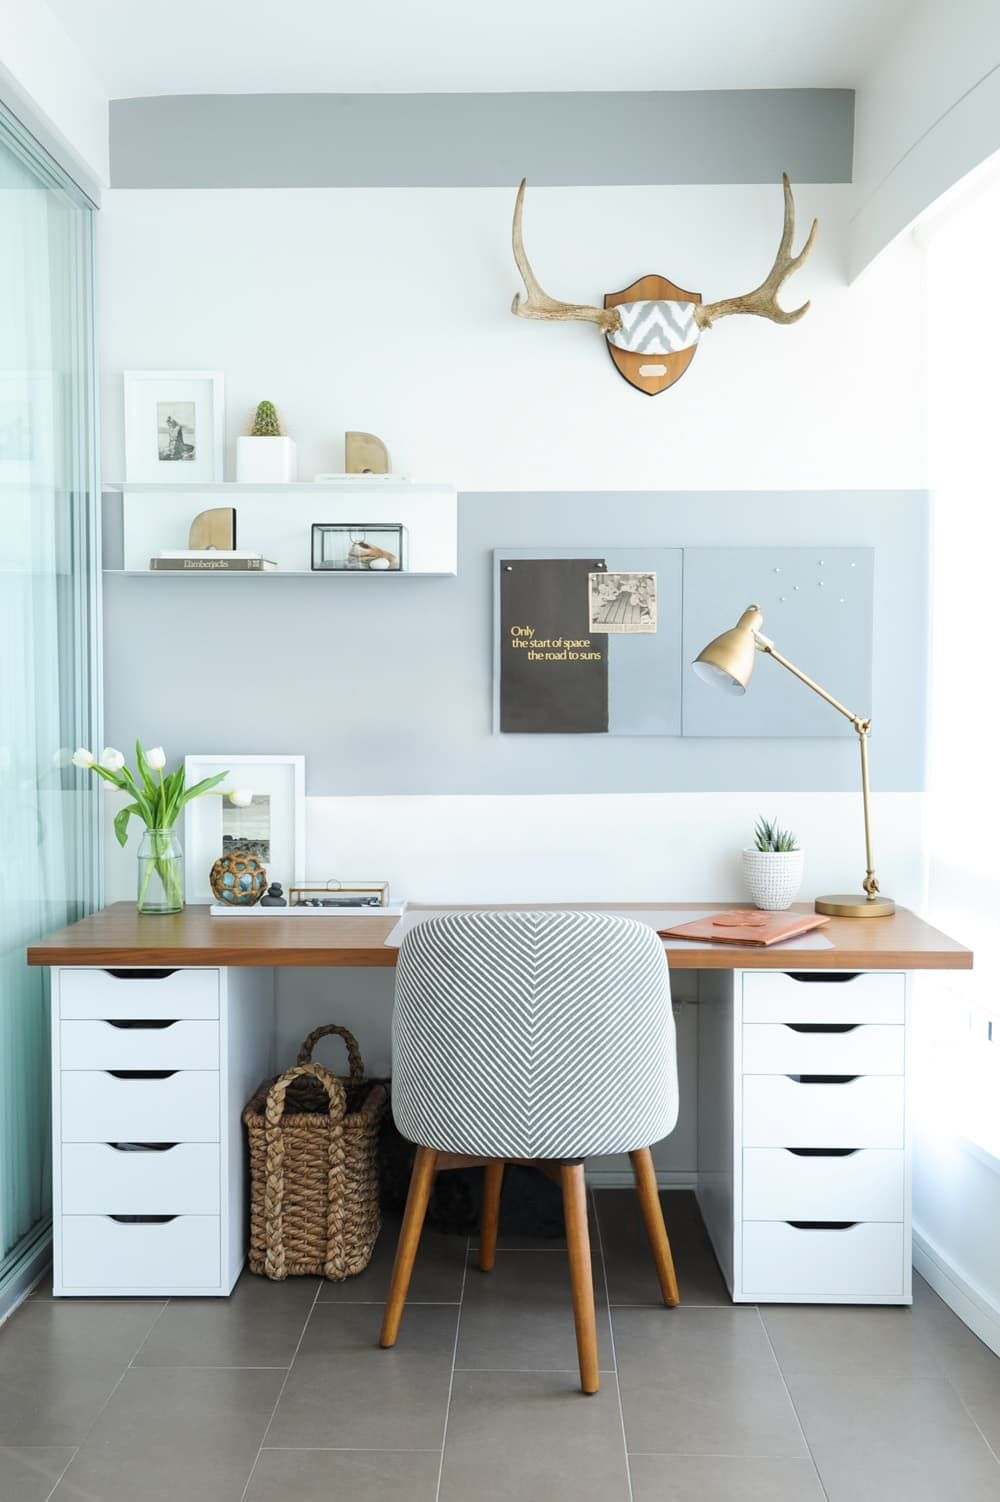 storage swivel an office equipment cumputer with desk shelves shelving rectangular teenagers for table plus and fur furniture drawers white shelf wooden desks book small chair house study